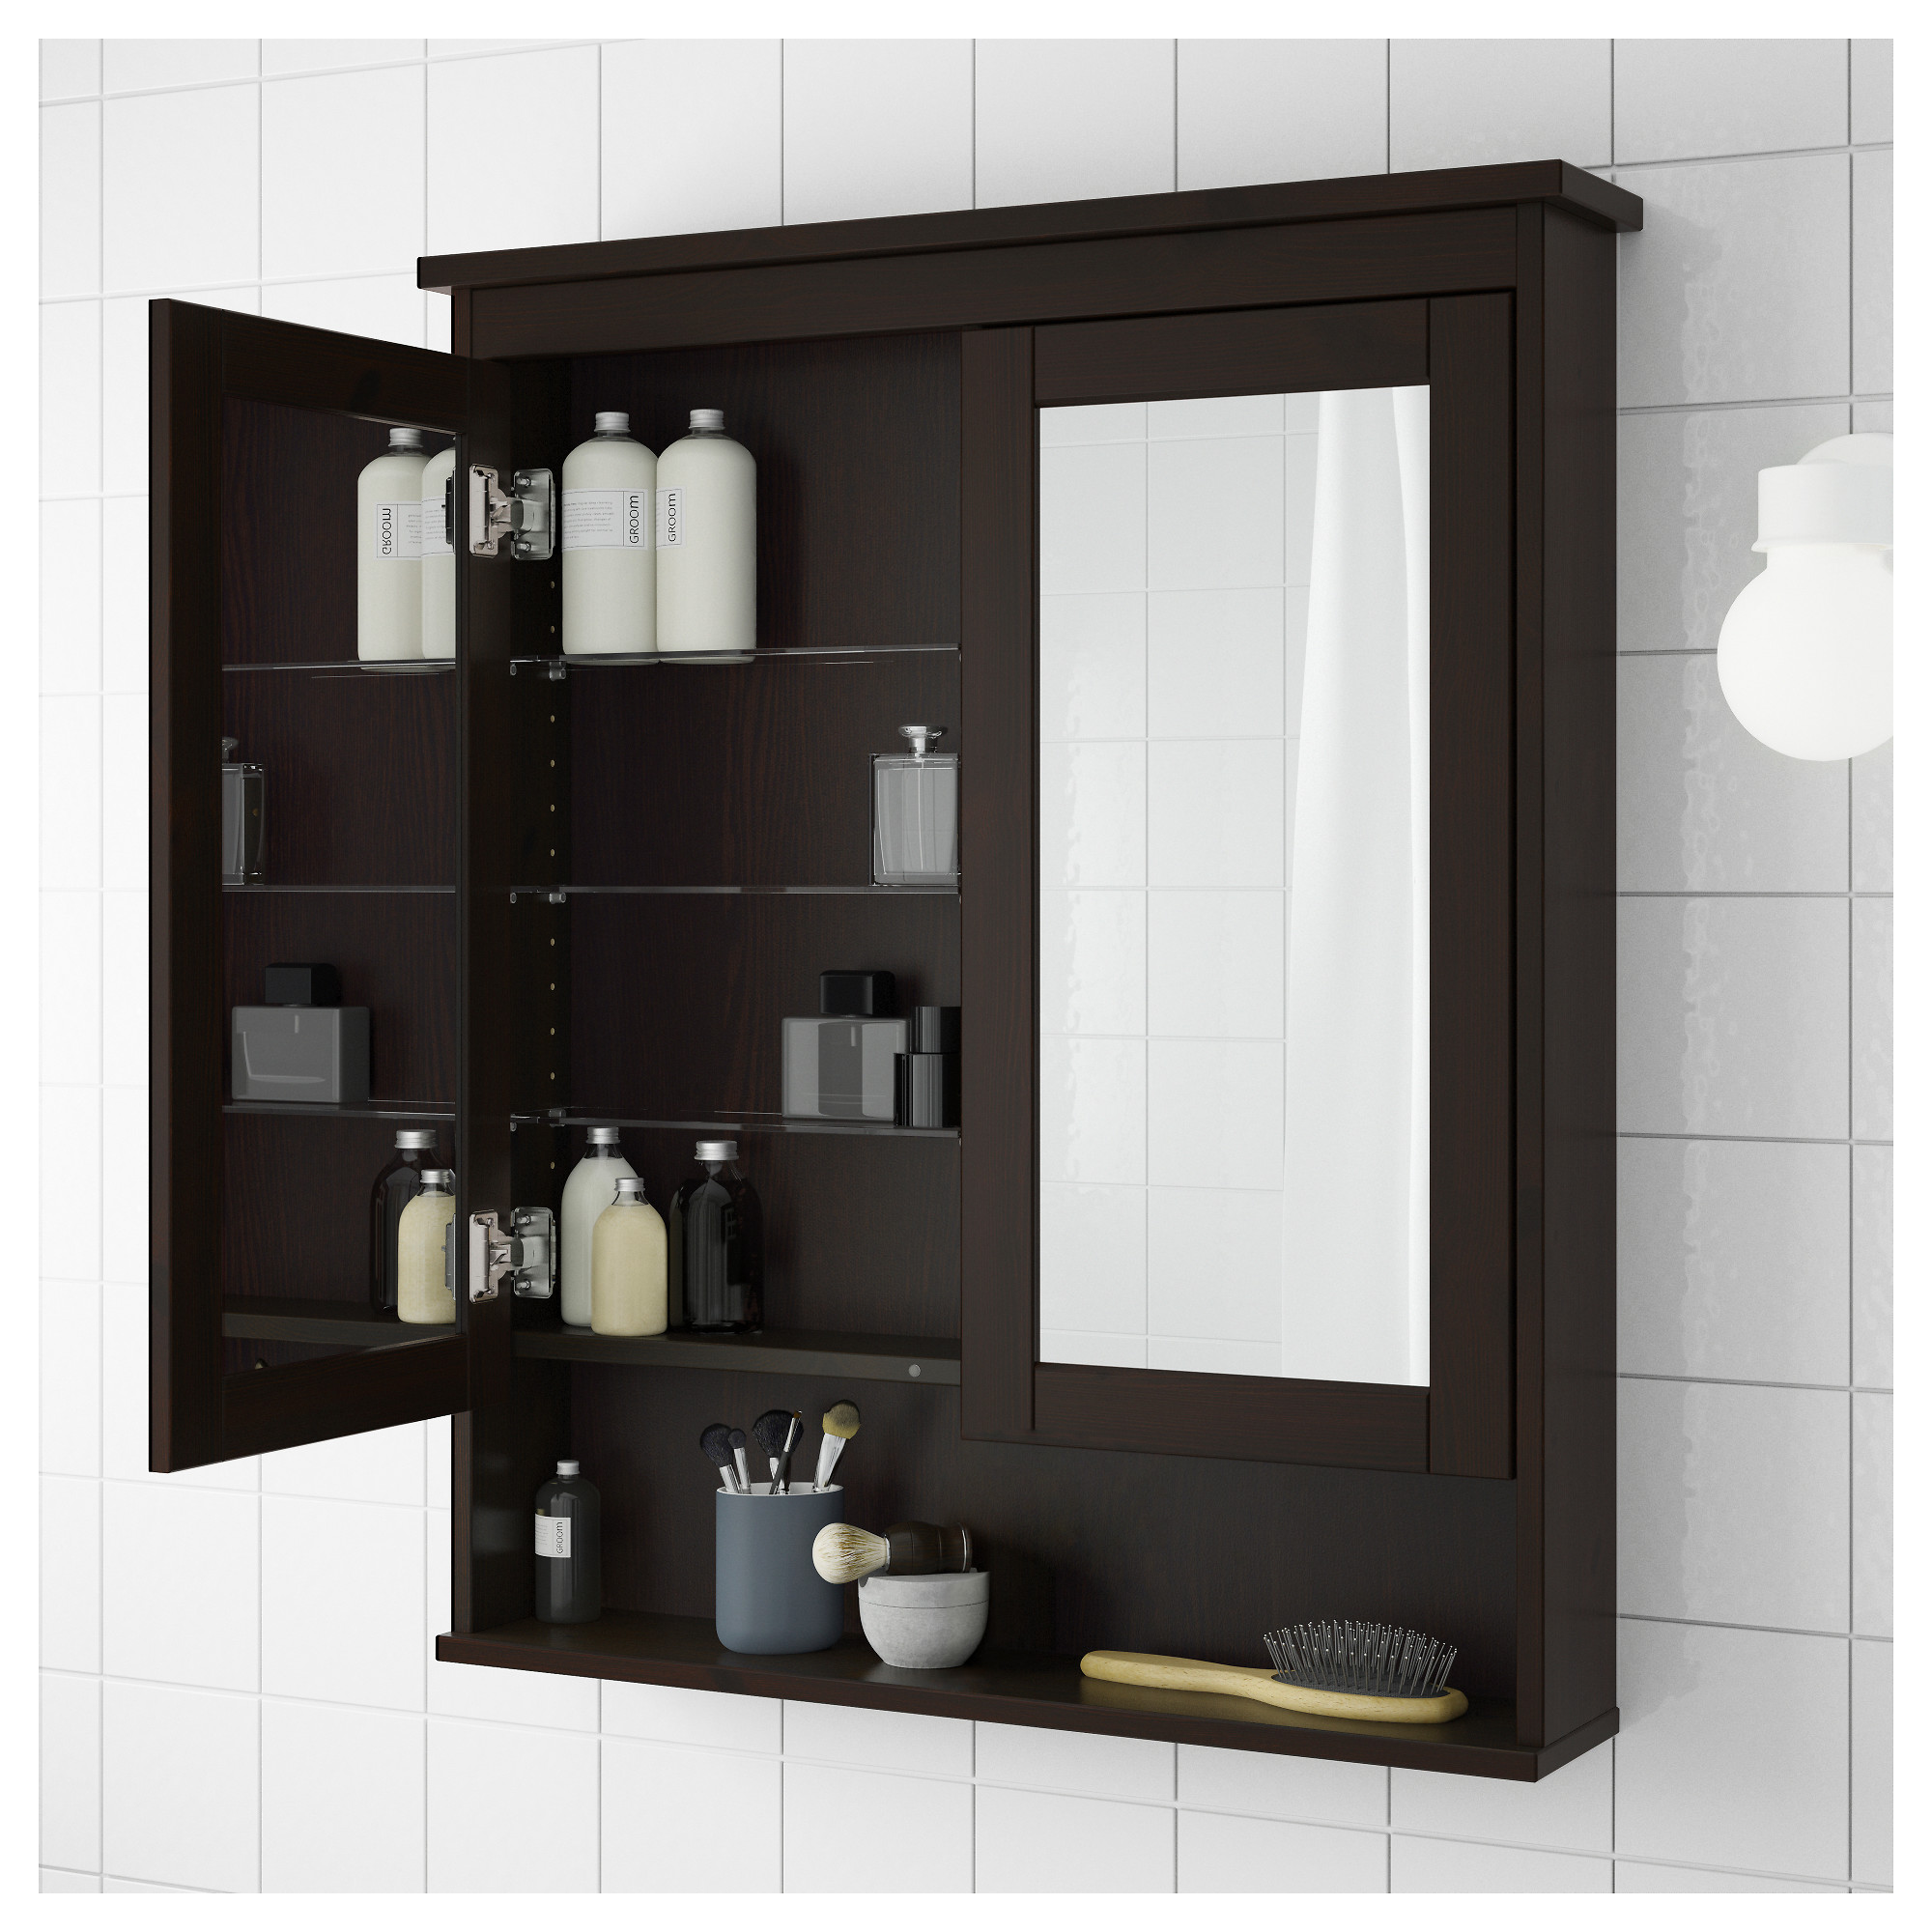 illuminated foxhunter mirror cabinet images sentinel cupboard medicine best led elegant bathroom replacement door of storage